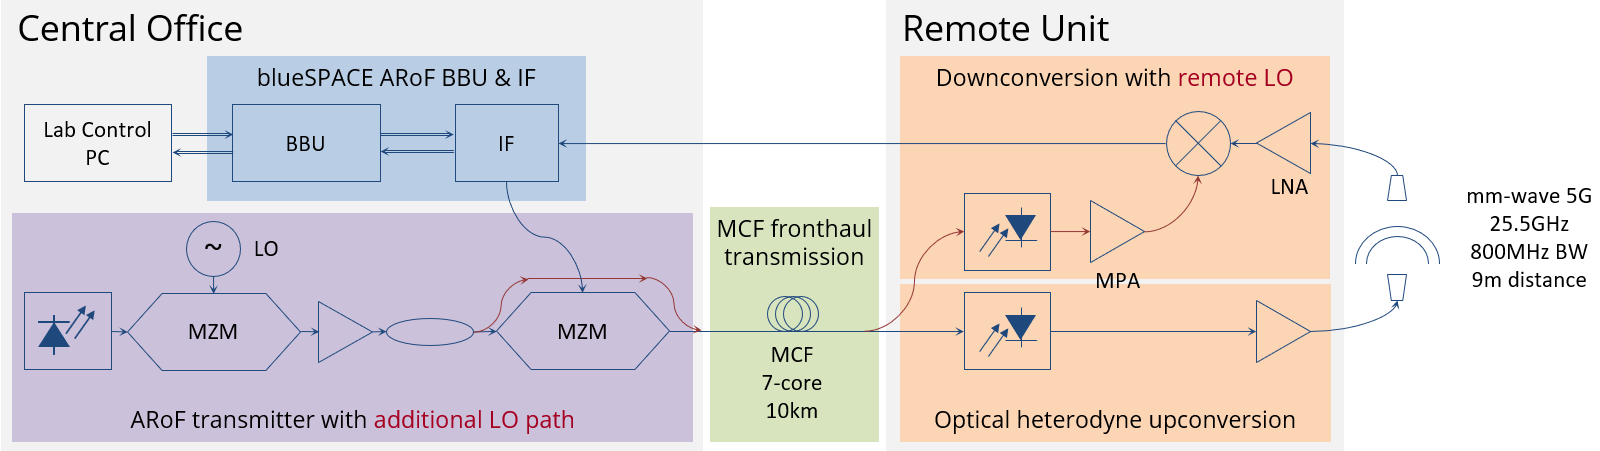 Schematic of the demo setup, showing the system layout and highlighting the blueSPACE components and concepts.